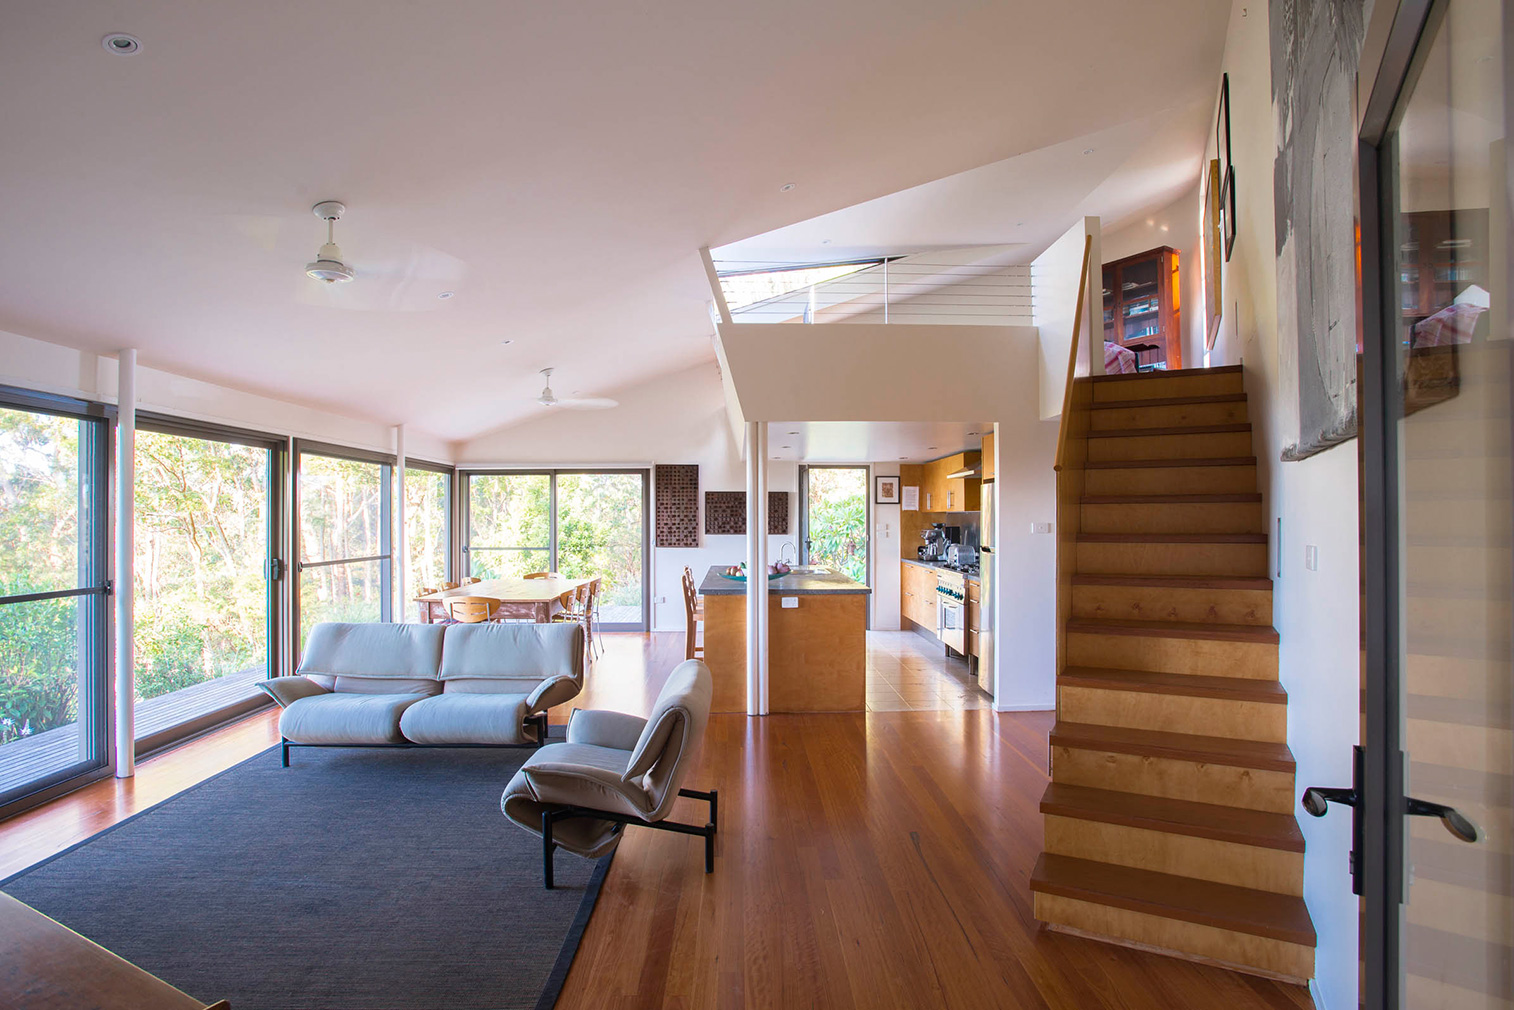 Way Way House has unusual angles and a double-height living room